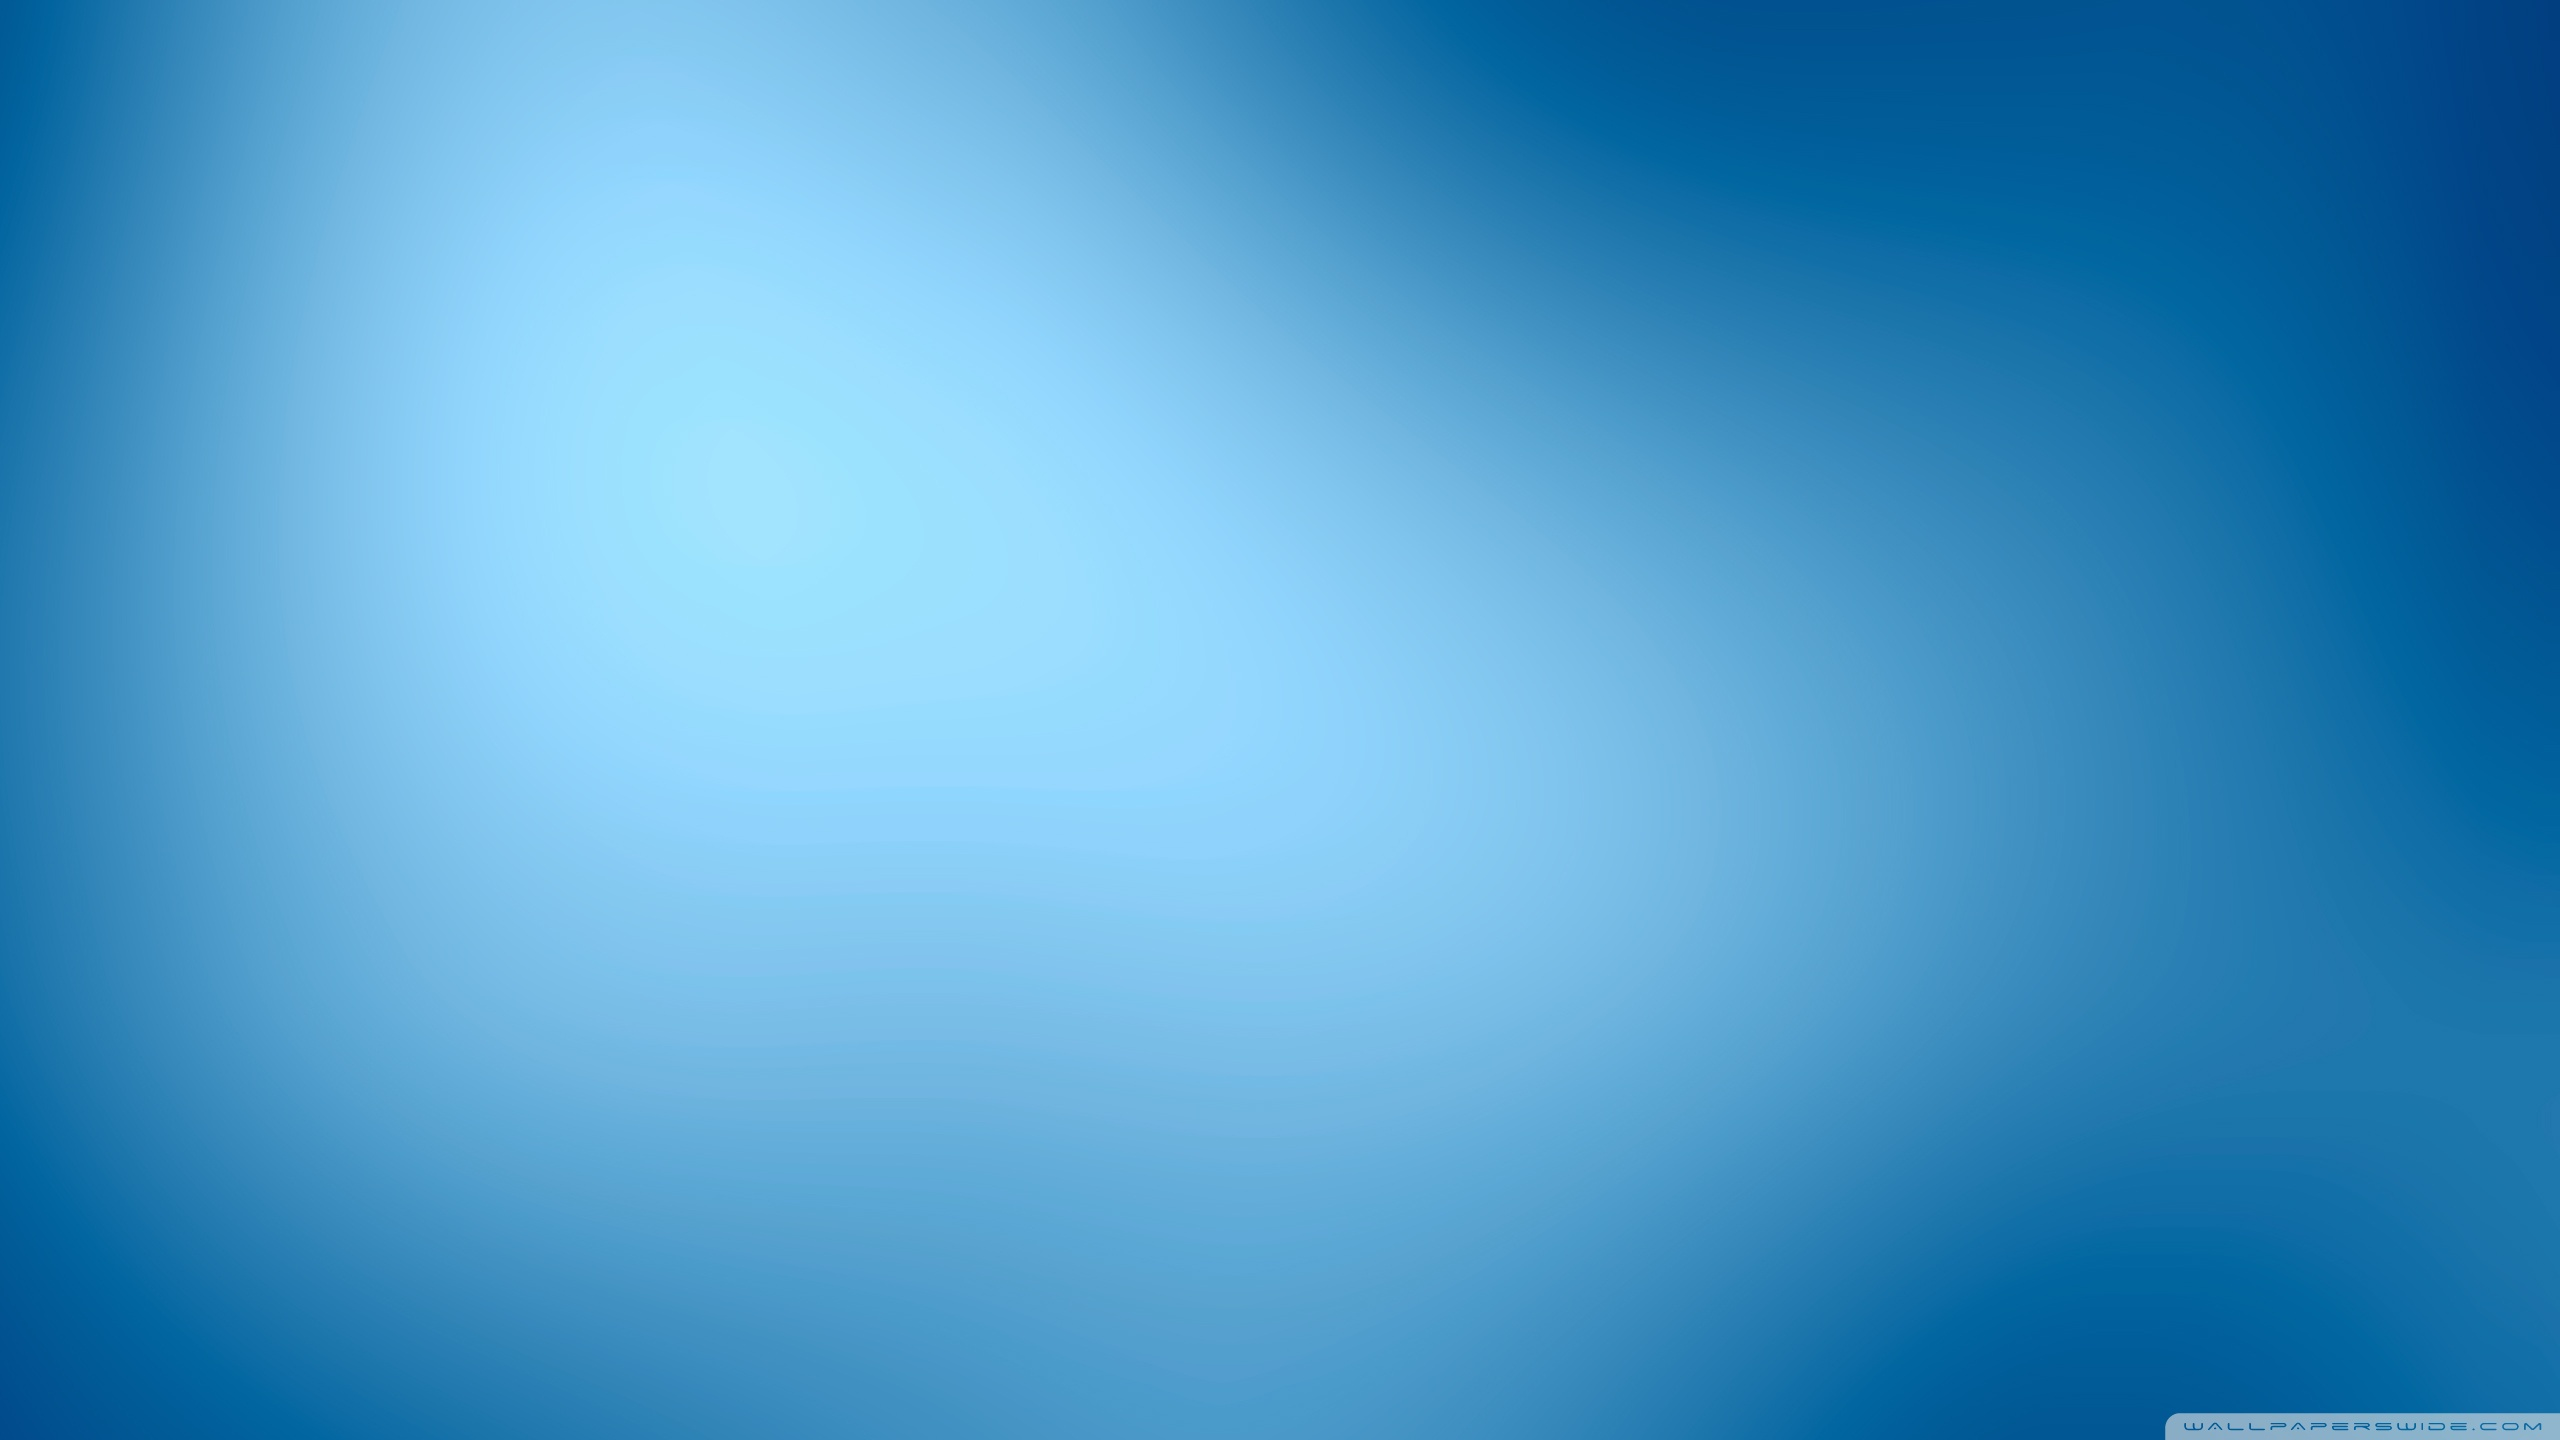 Simple Blue Background HD desktop wallpaper : High Definition